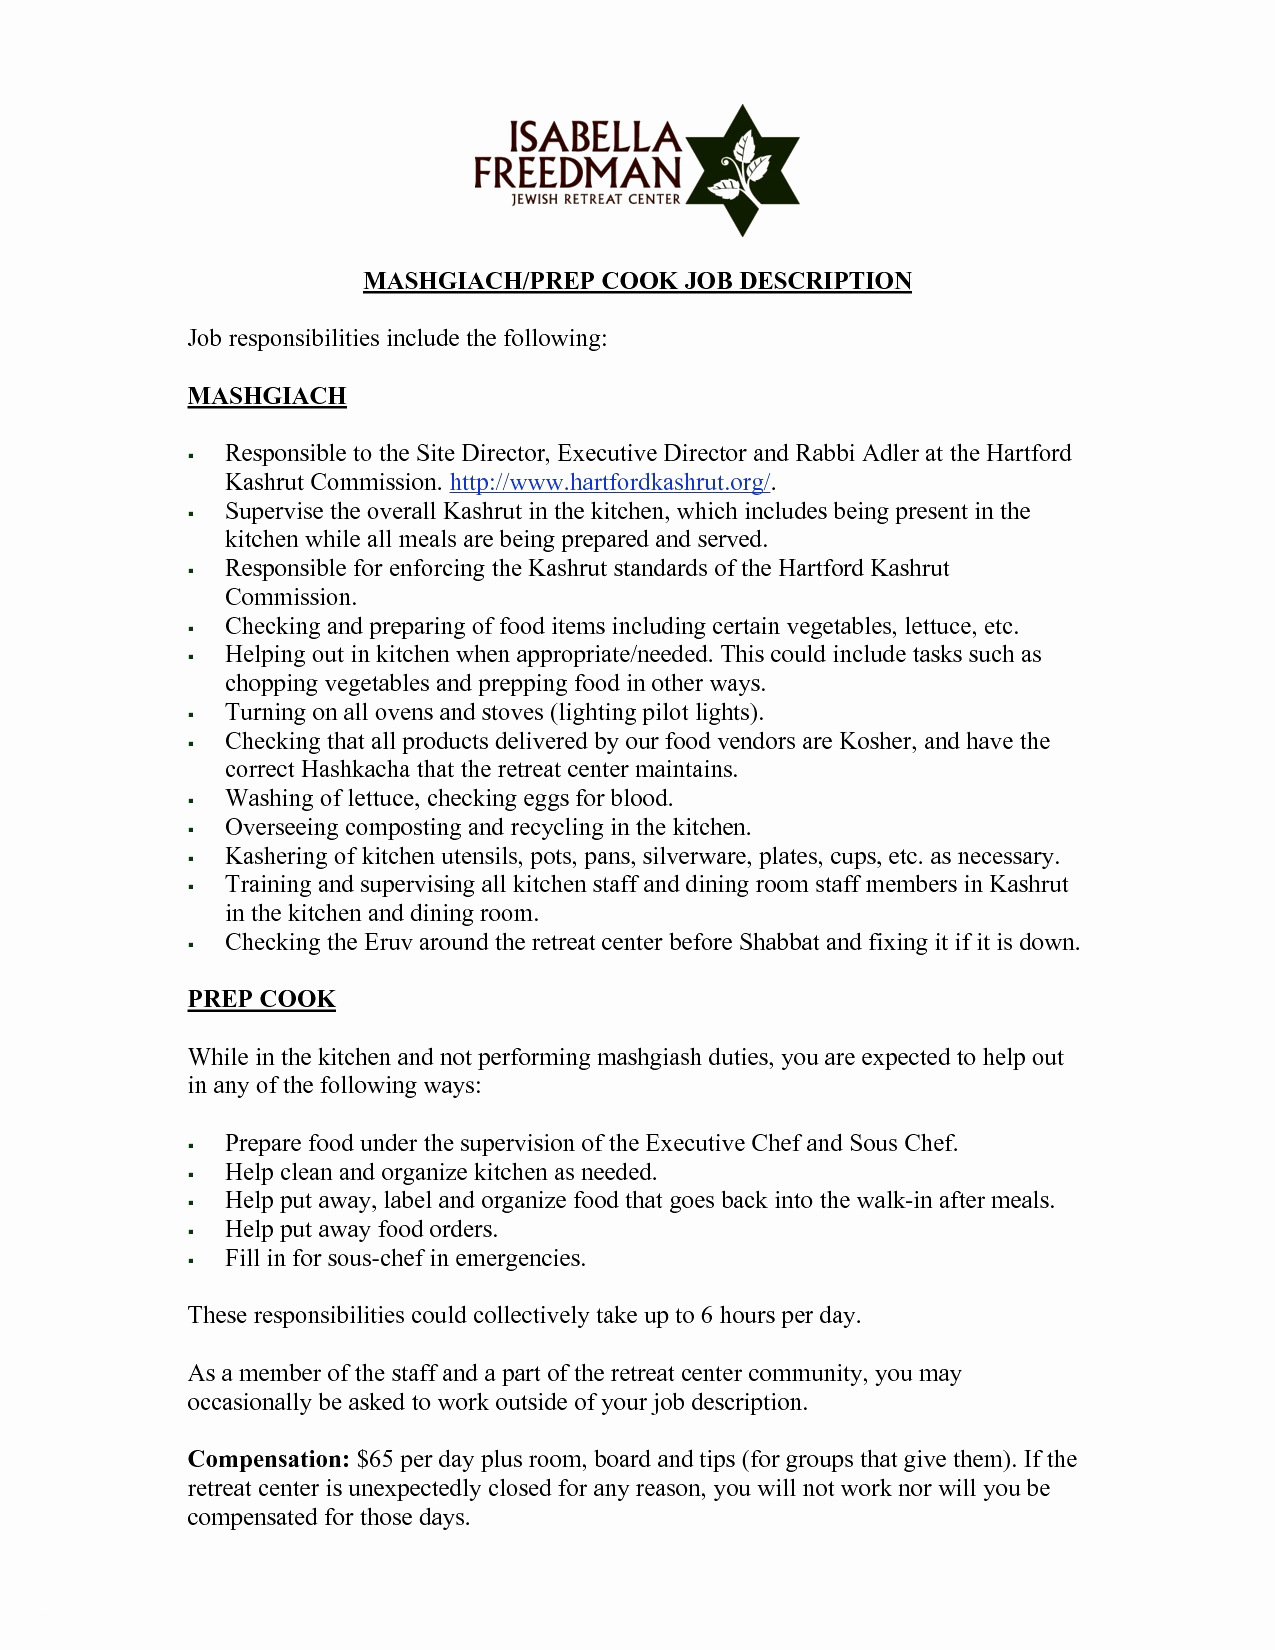 Free Sample Resume Cover Letter Template - Resume Cover Letter Template Free Inspirational Resume and Cover